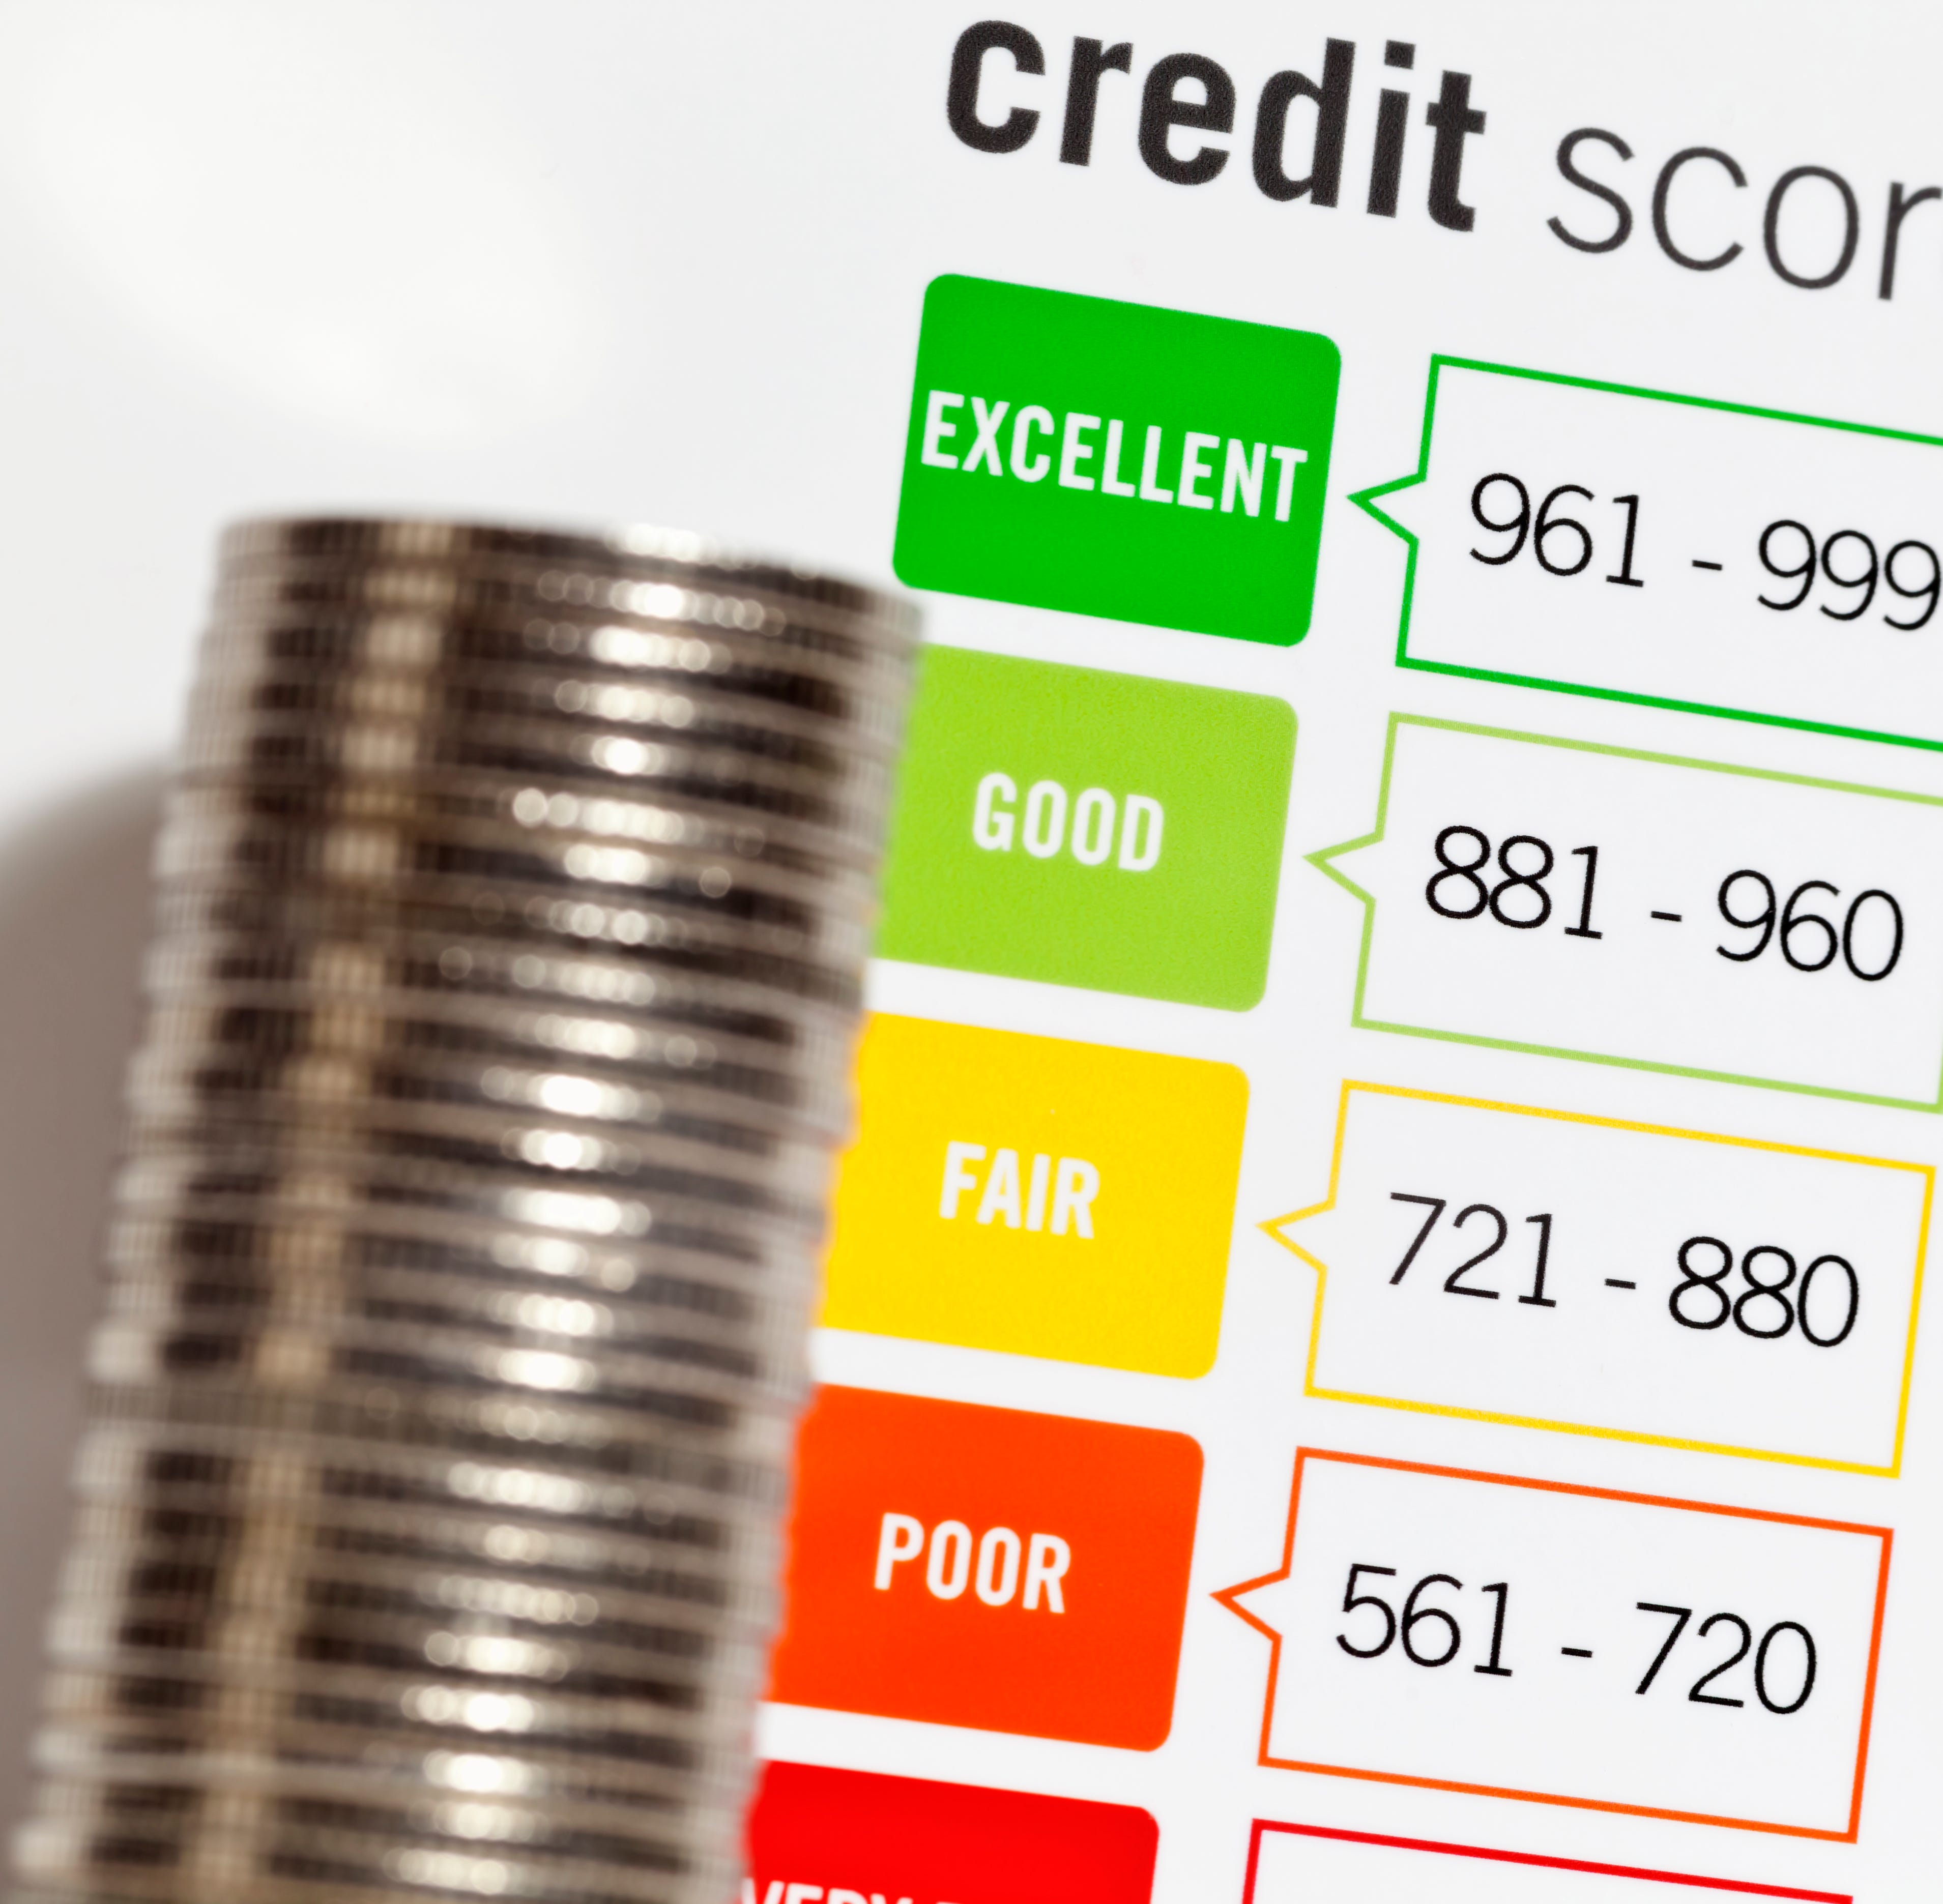 Once you hit this FICO credit score, going higher is a waste of time